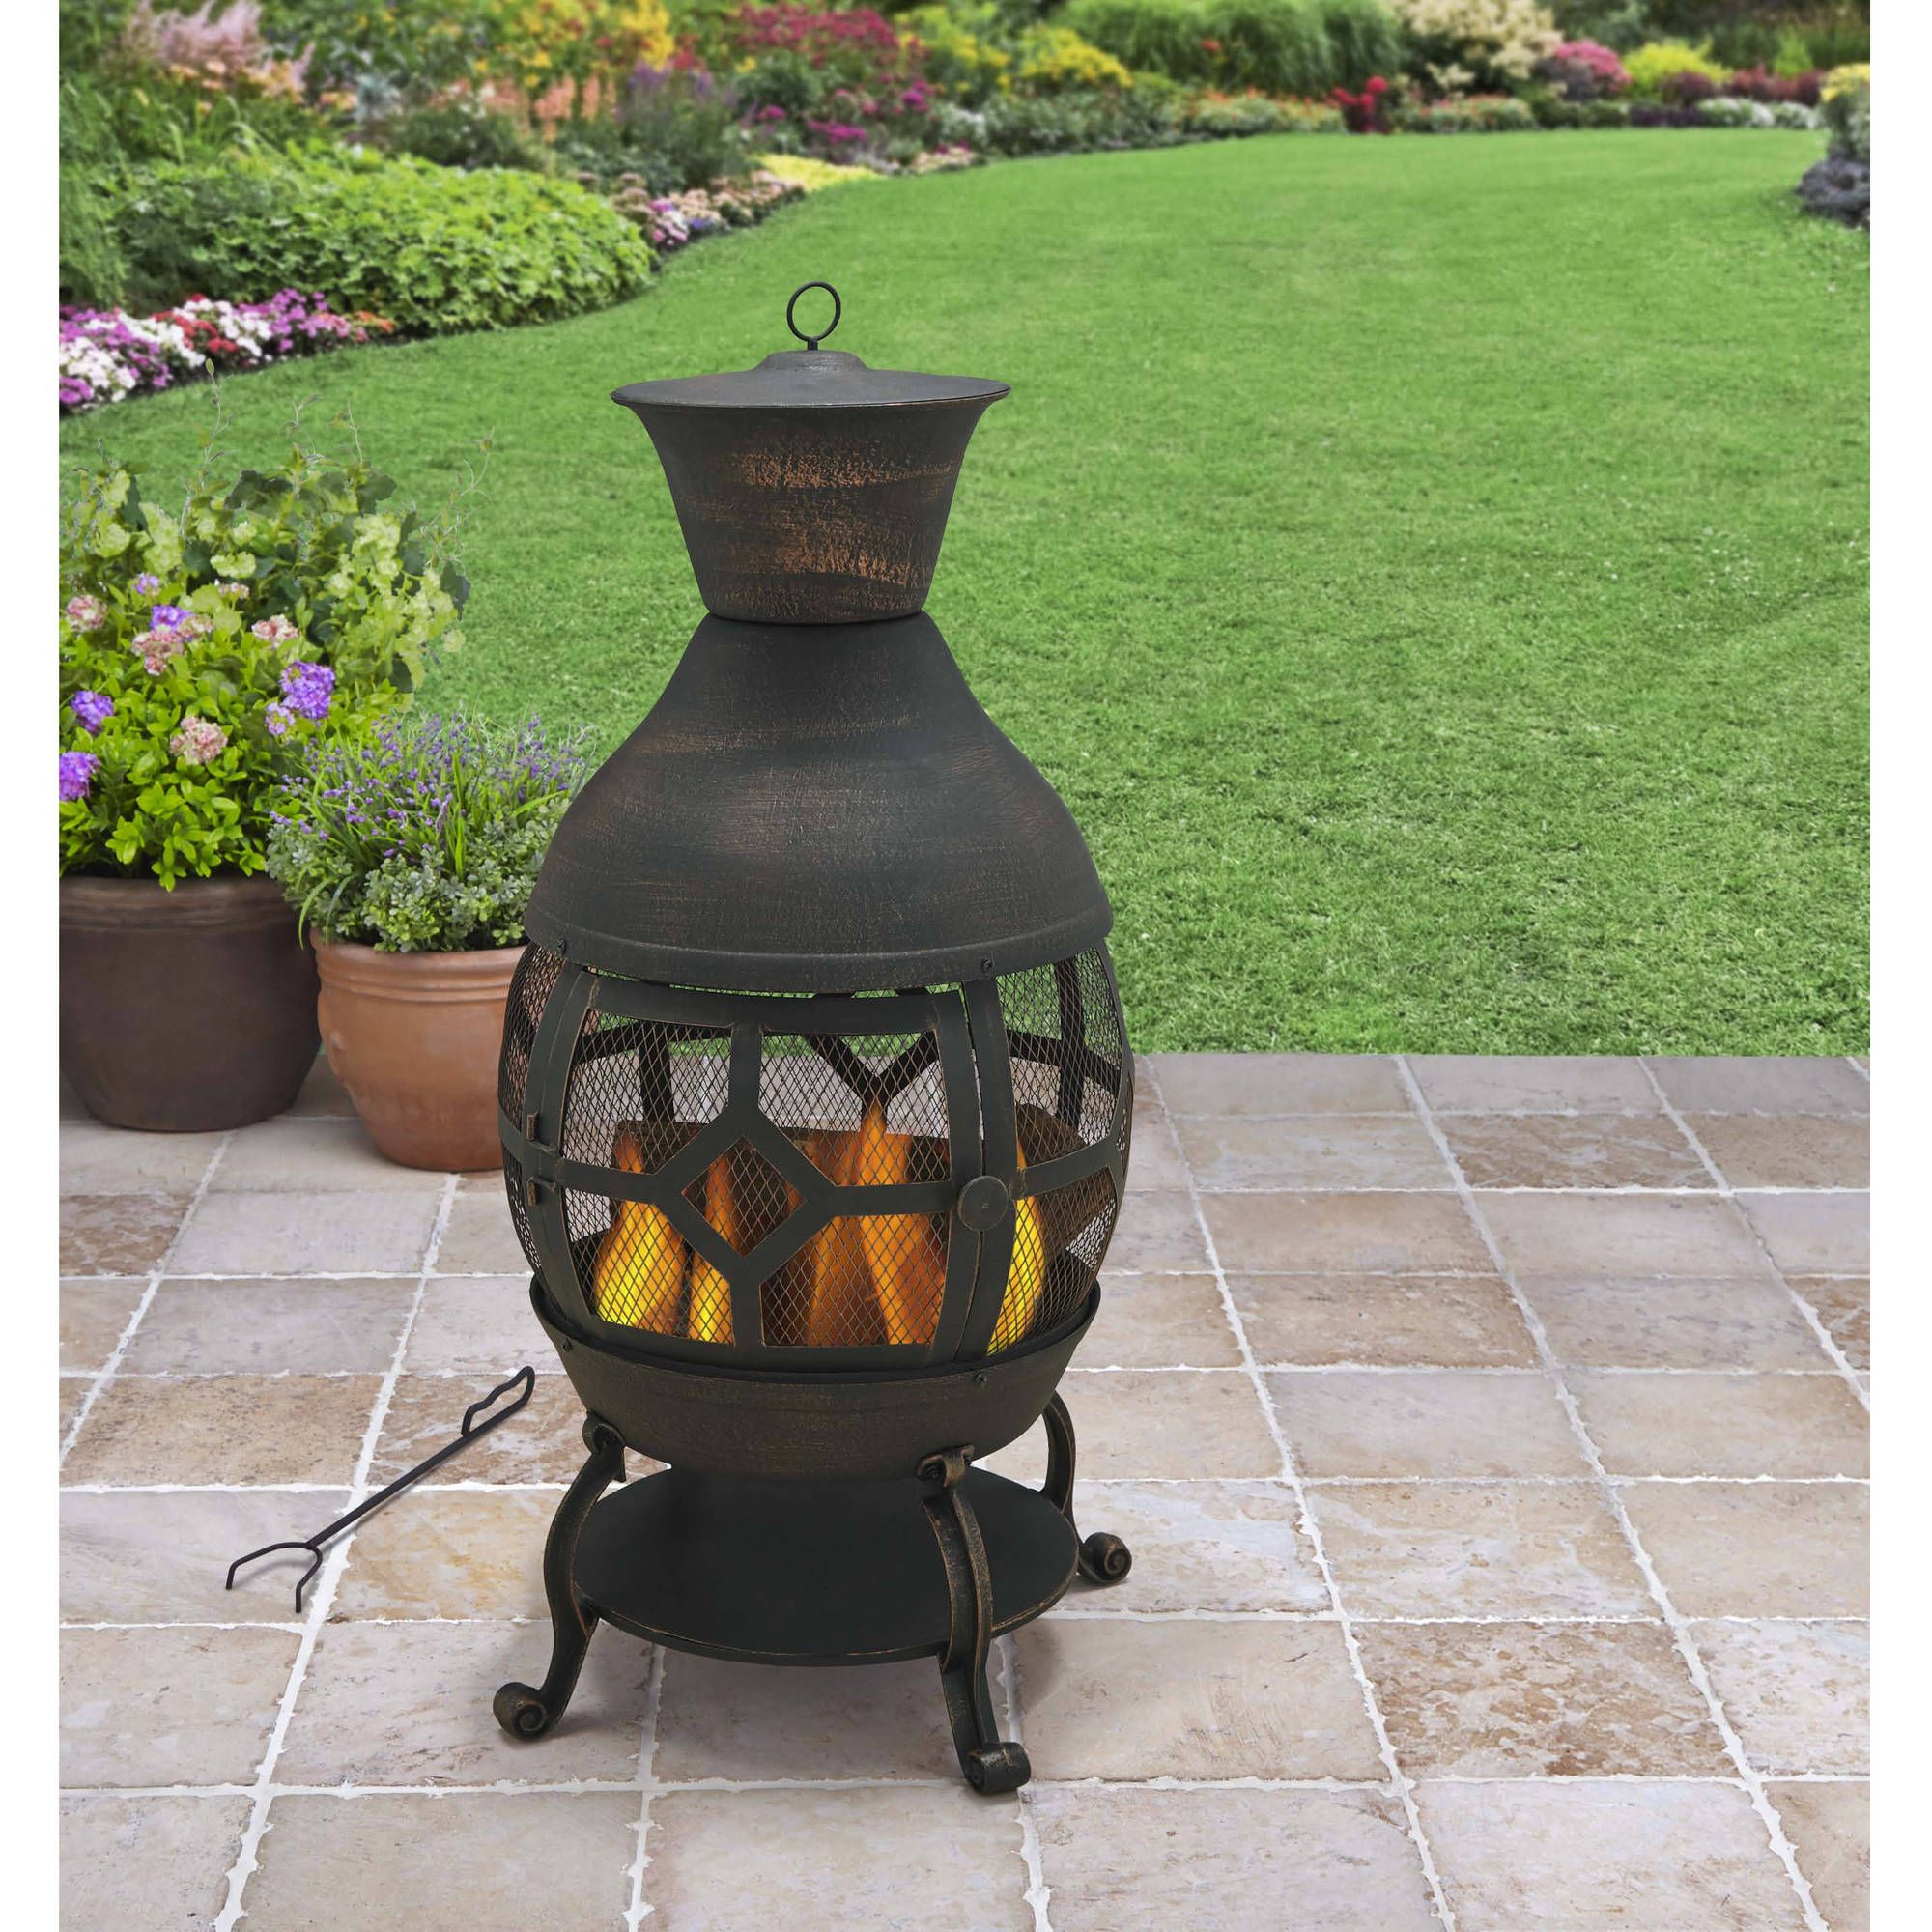 Image result for chimnera fire pits tuscan | Fire pits | Pinterest ...